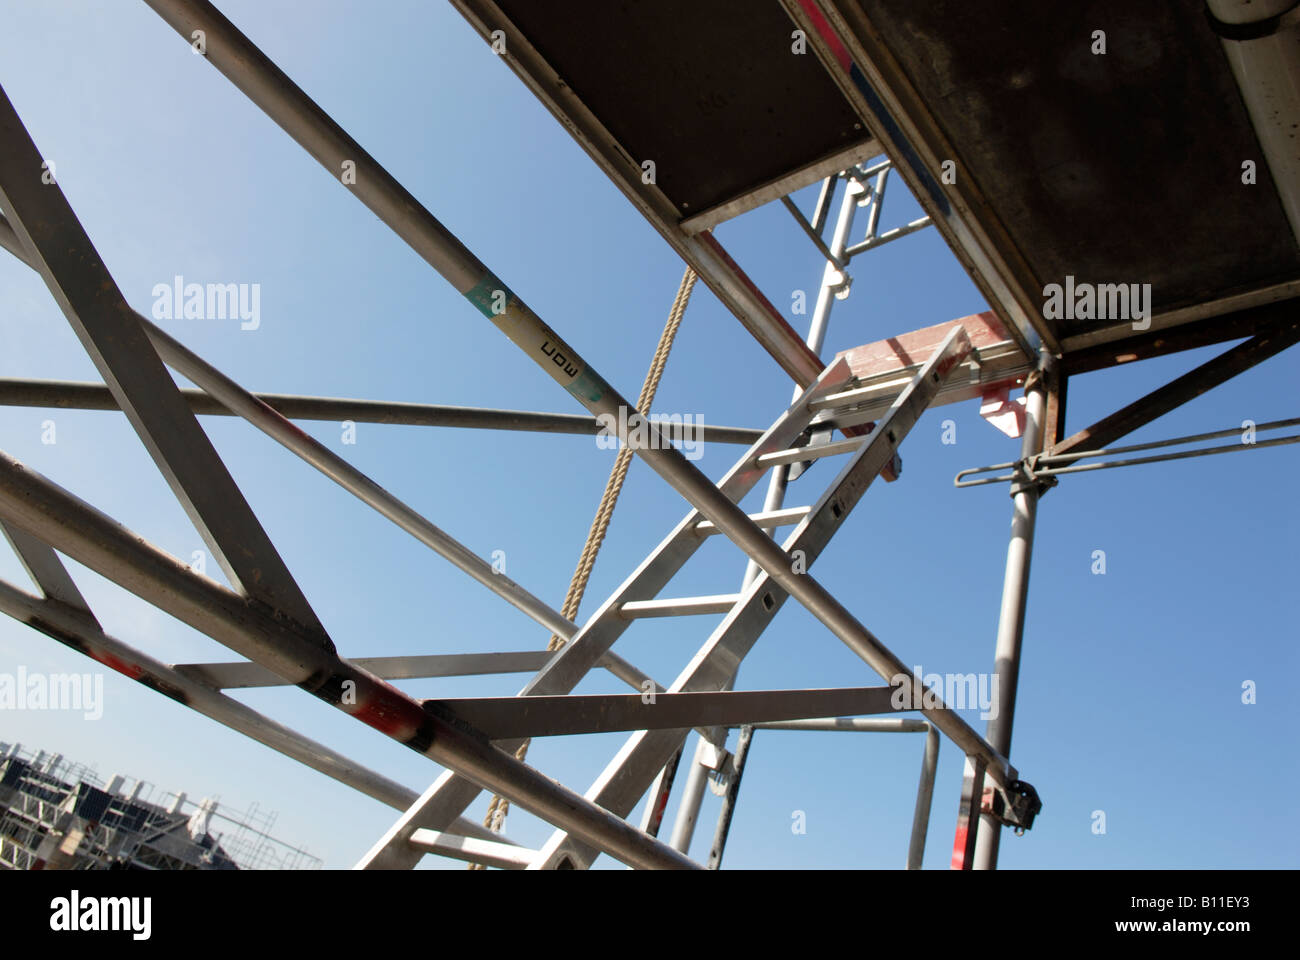 SCAFFOLDING WITH LADDER - Stock Image